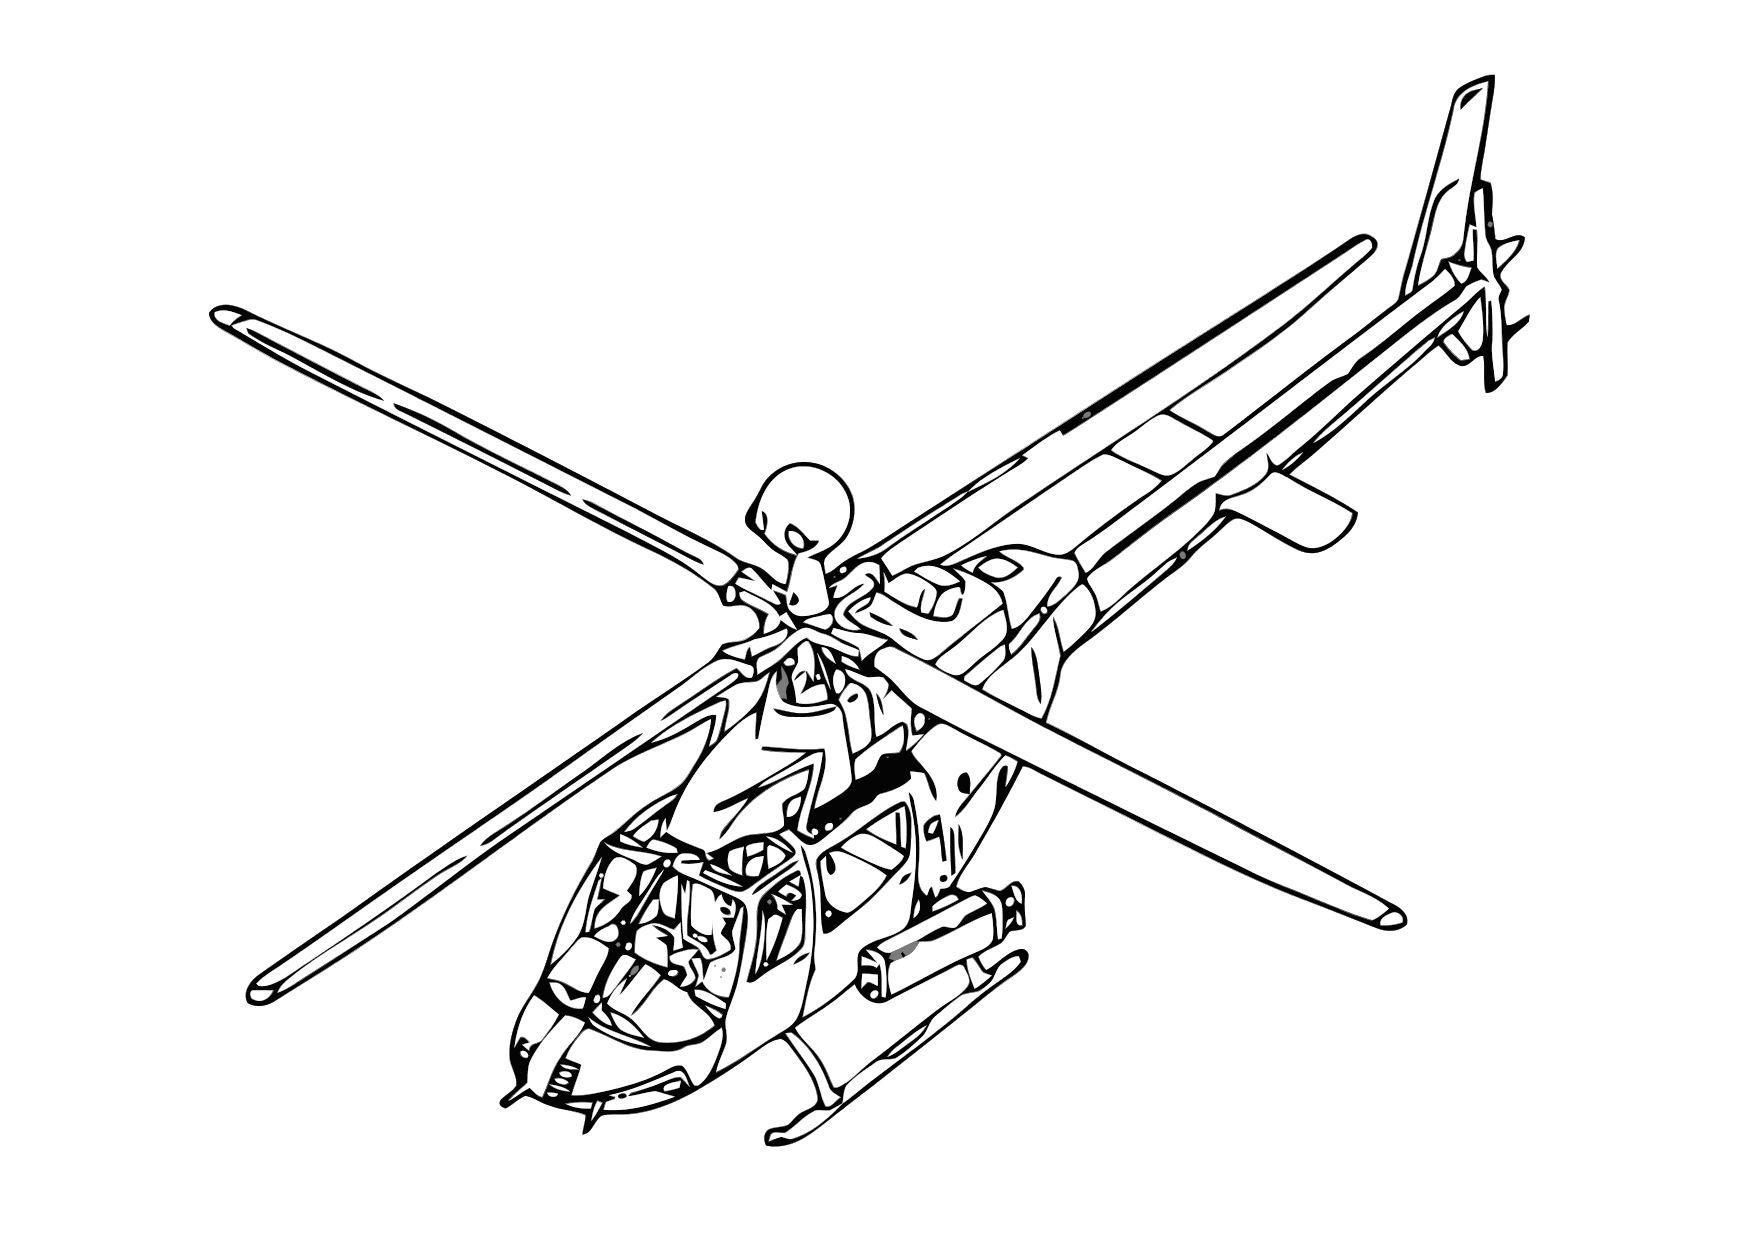 helicopter colouring pictures free printable helicopter coloring pages for kids helicopter colouring pictures 1 1